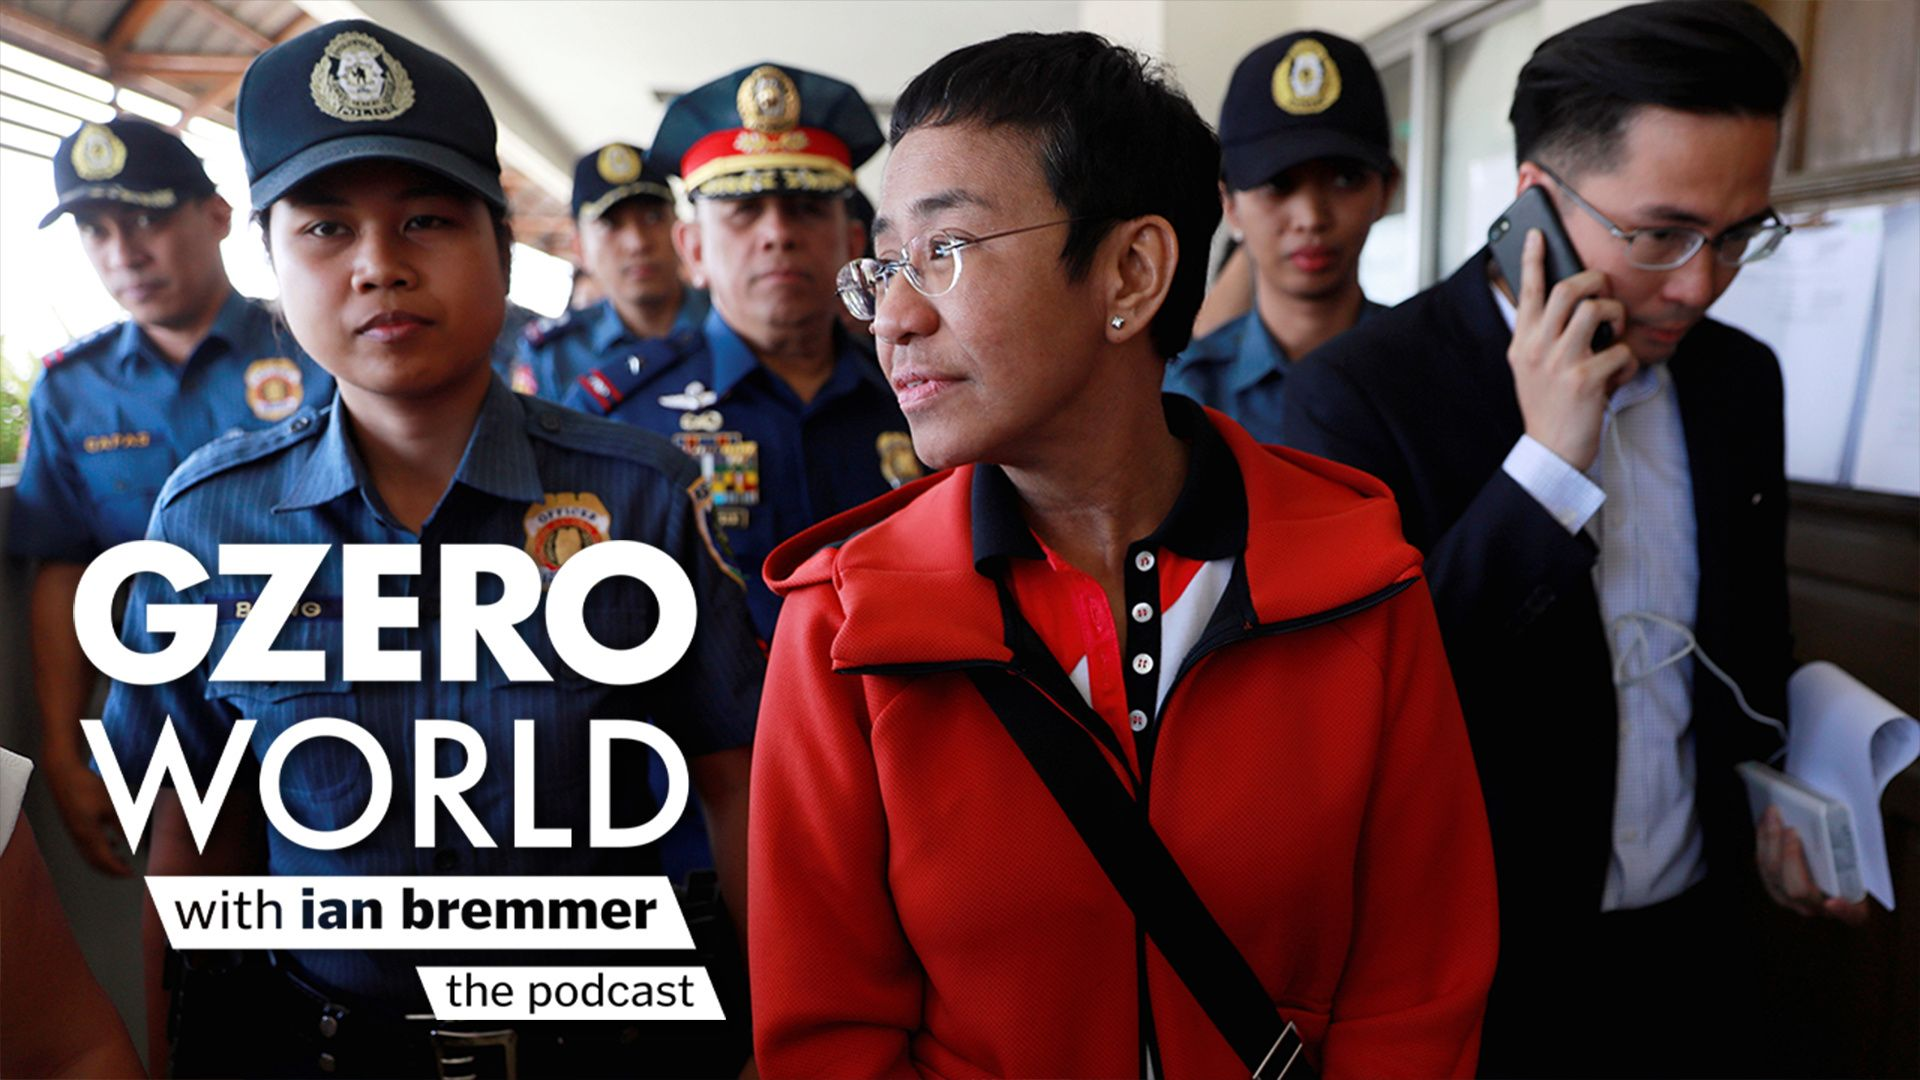 Podcast: Journalism on Trial in the Philippines with Maria Ressa